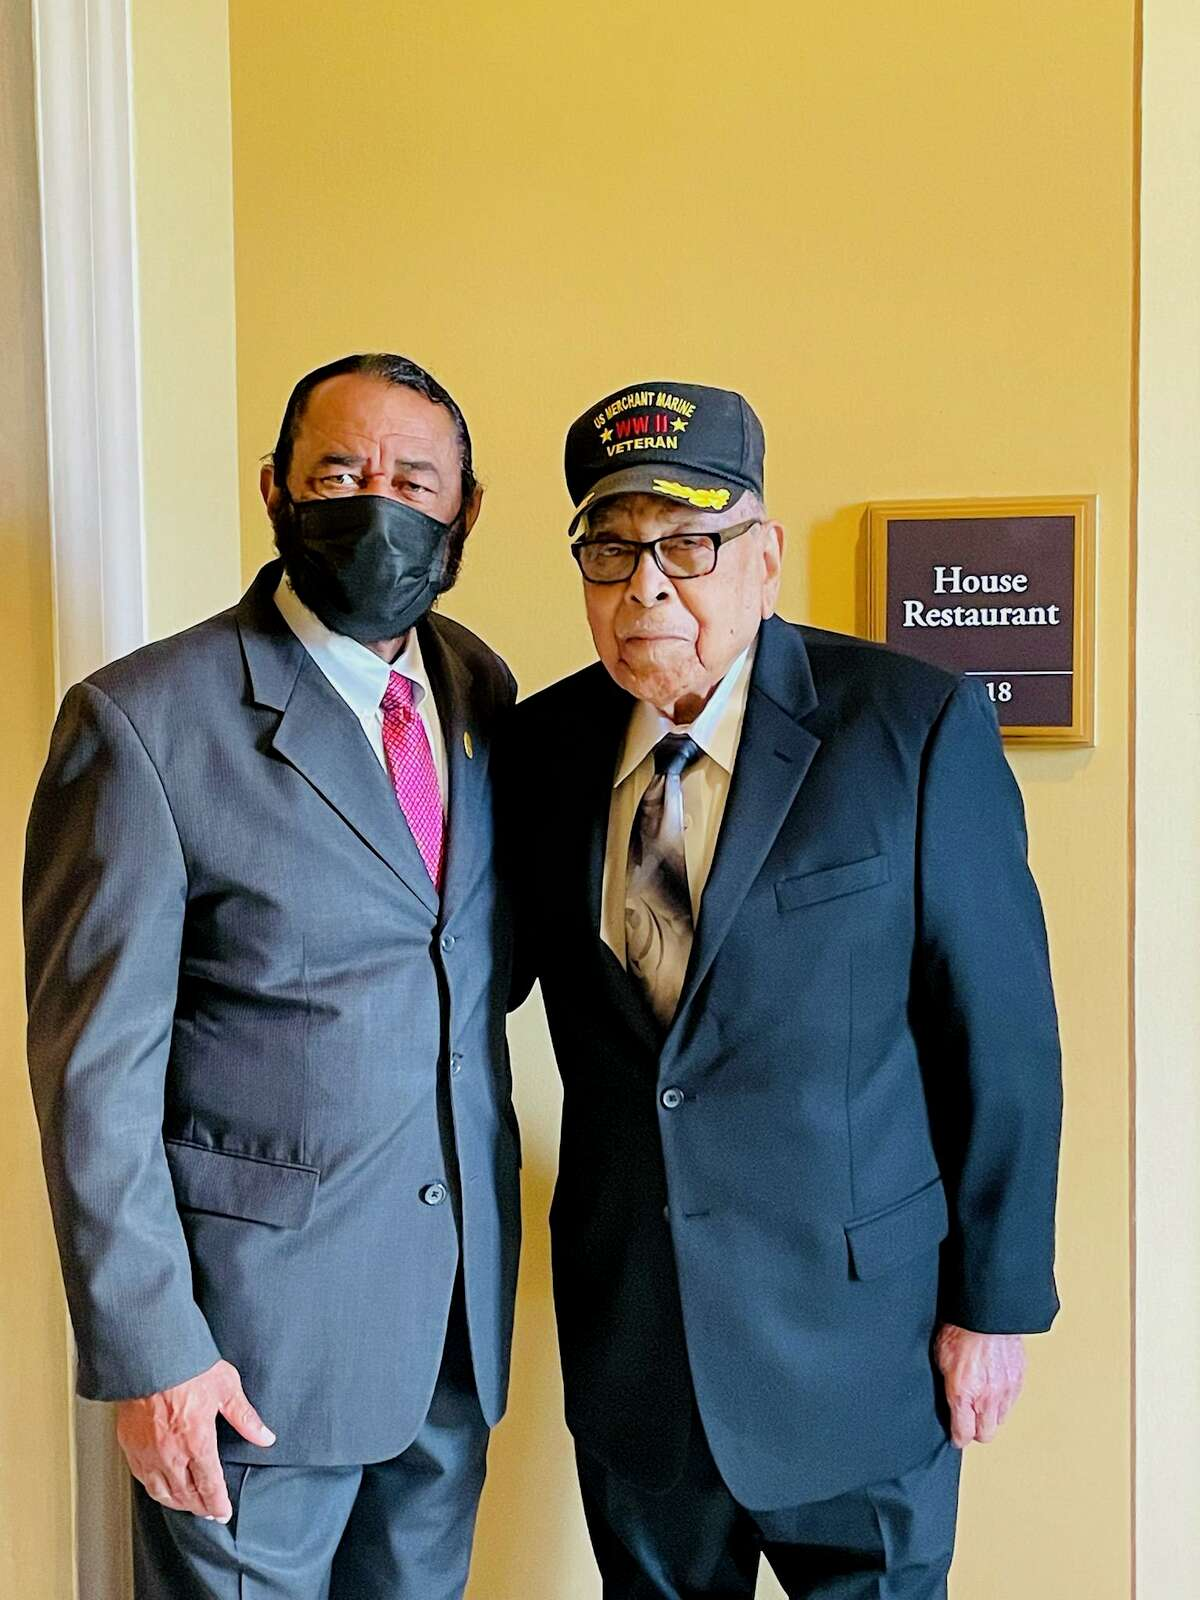 Congressman Al Green (D-Texas) and Charles Mills in Washington, D.C. Mills traveled to Washington at the behest of Green in order to garner support for U.S. Merchant Marines who served in World War II